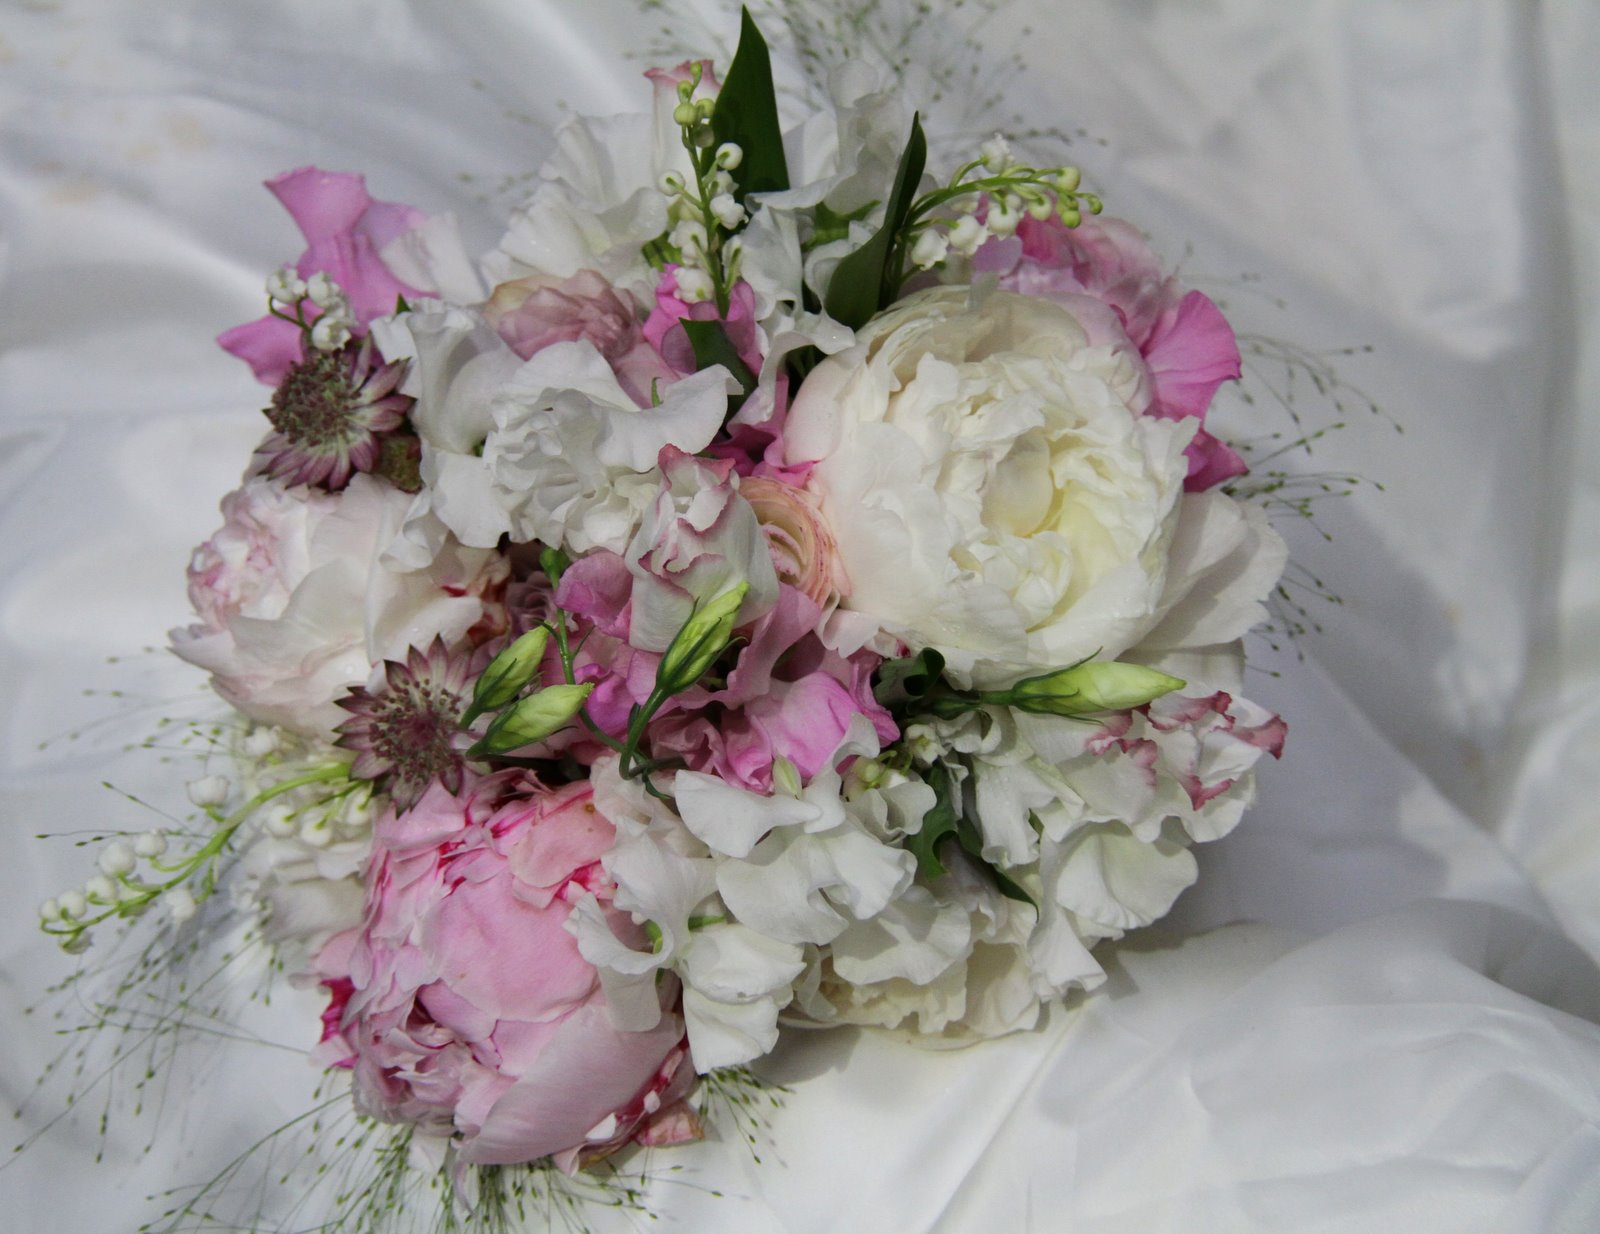 peonies lily of the valley and sweet peas surrounded by a haze of